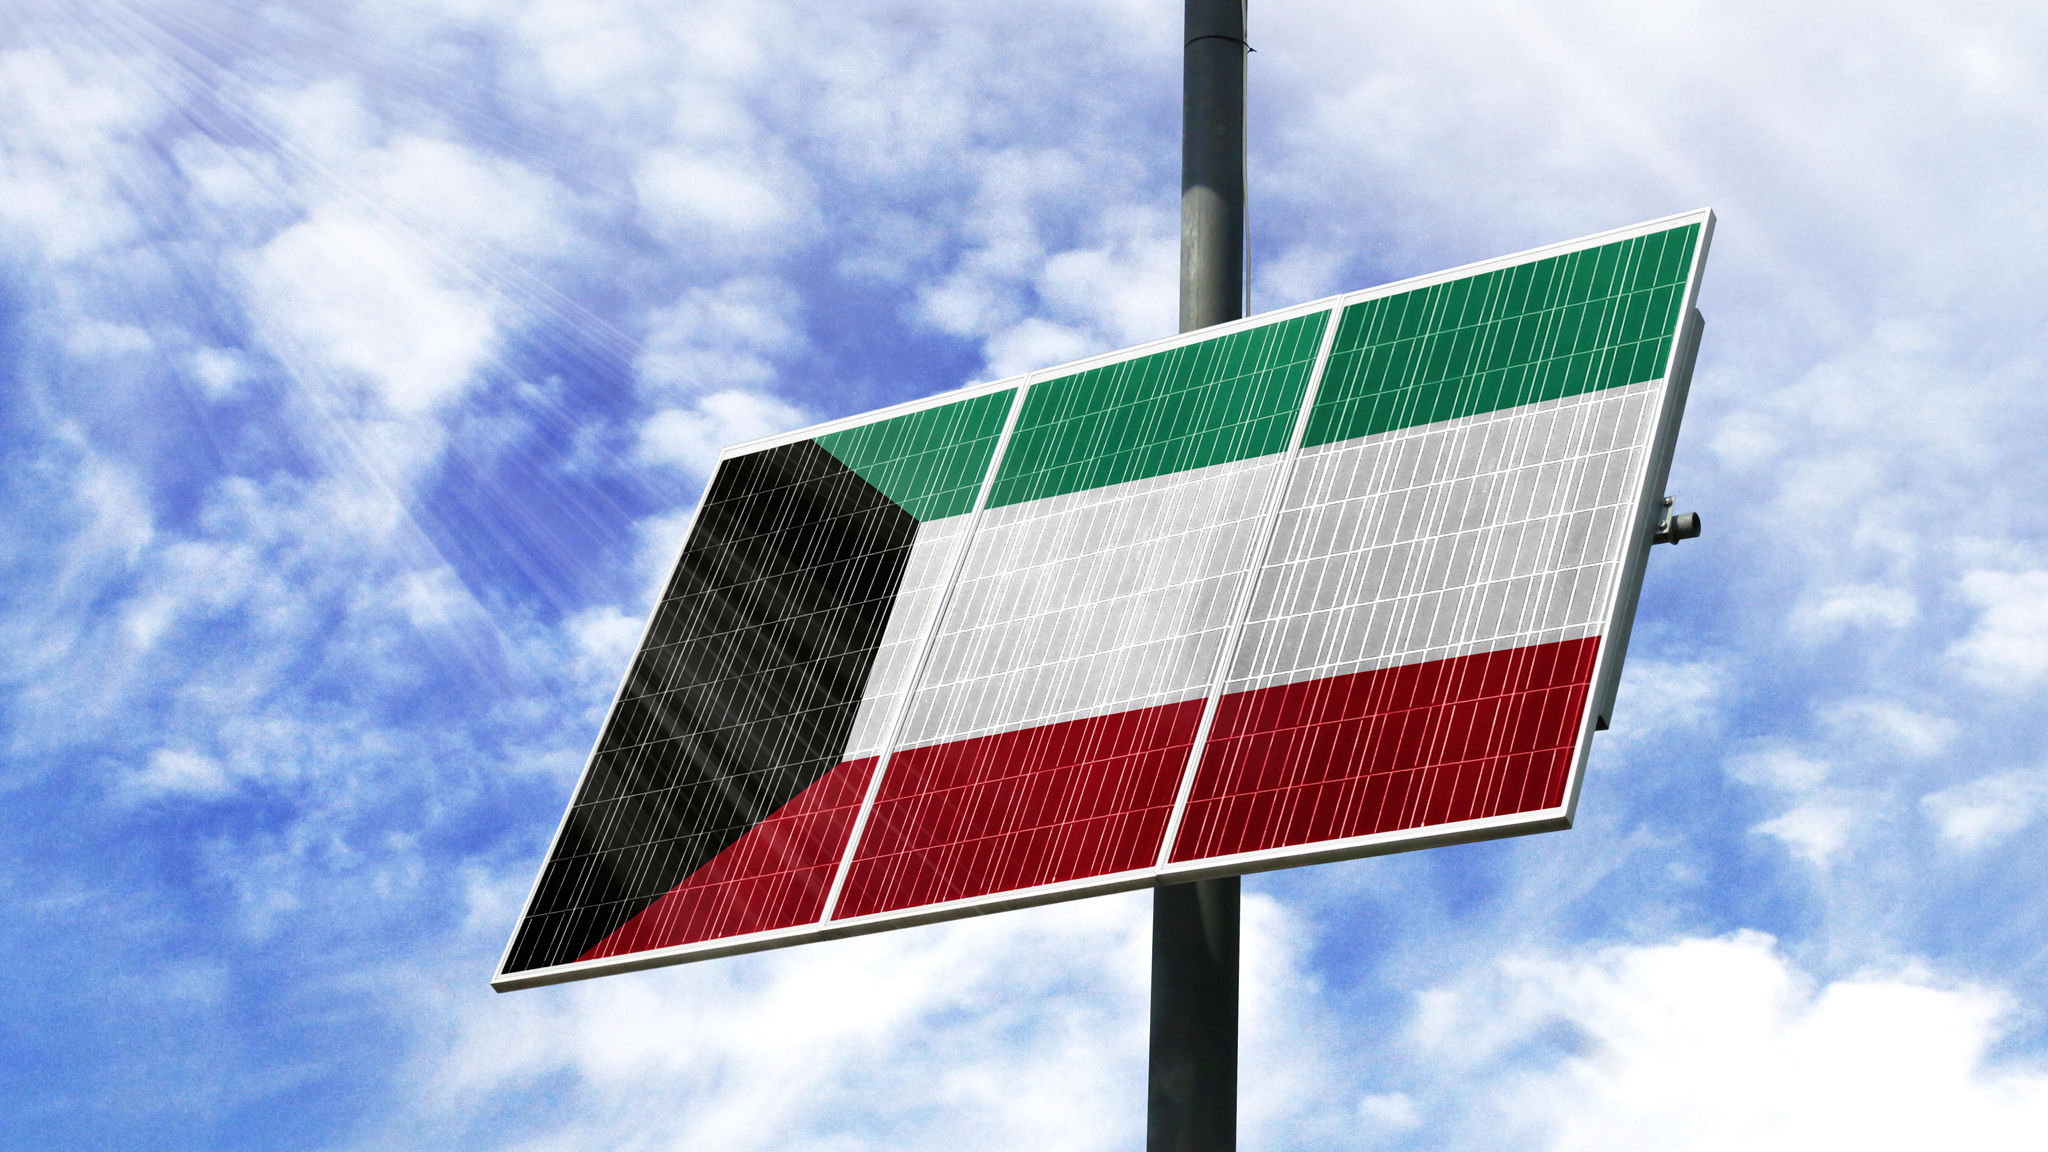 Kuwait's action on green energy fails to match best